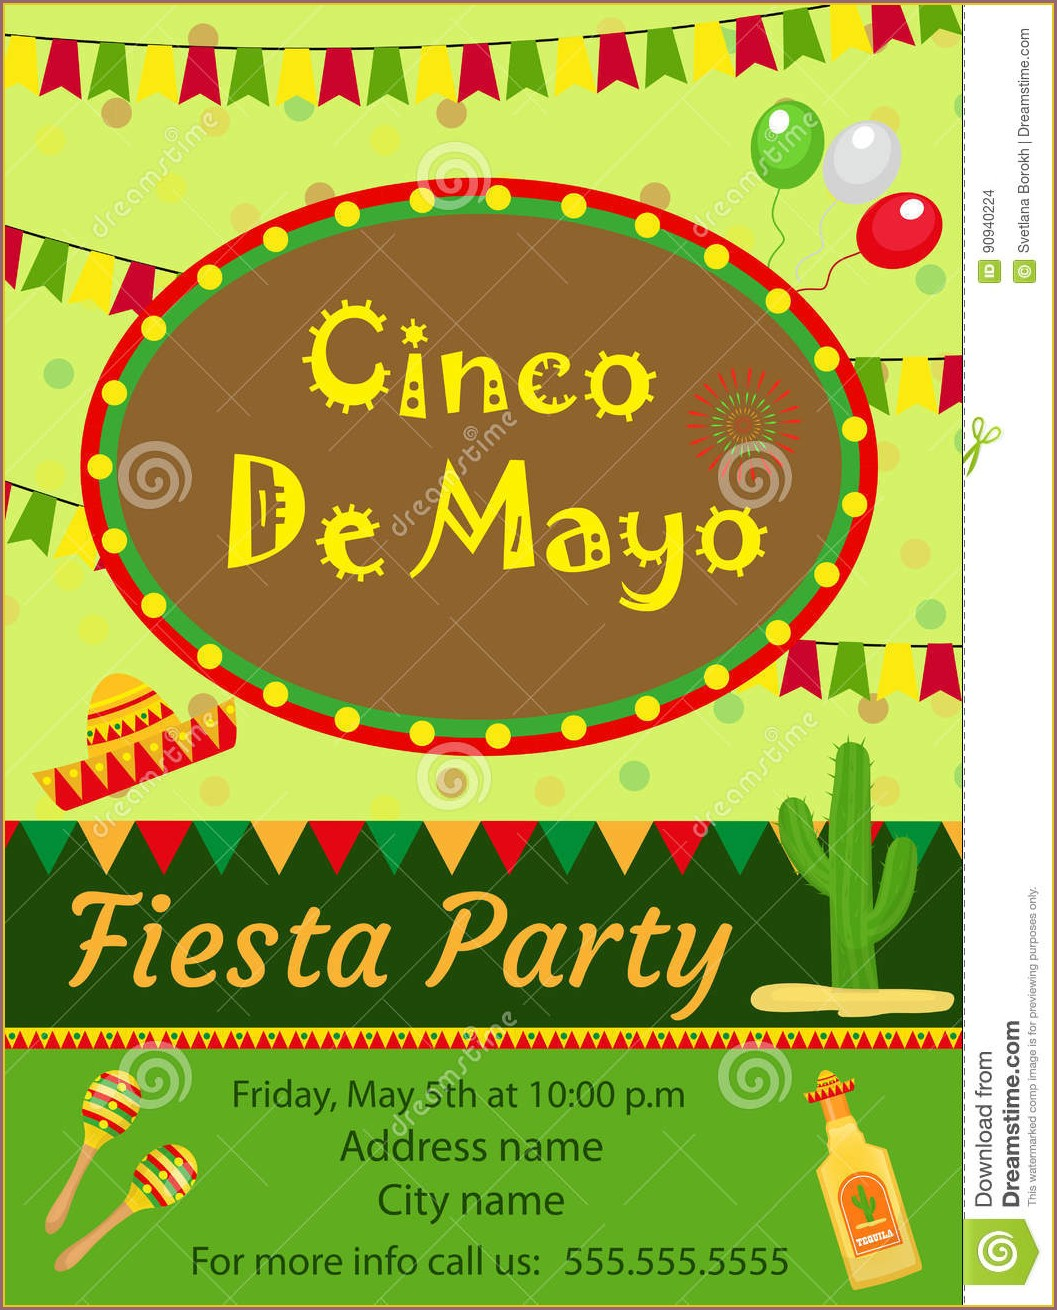 5 De Mayo Invitation Template